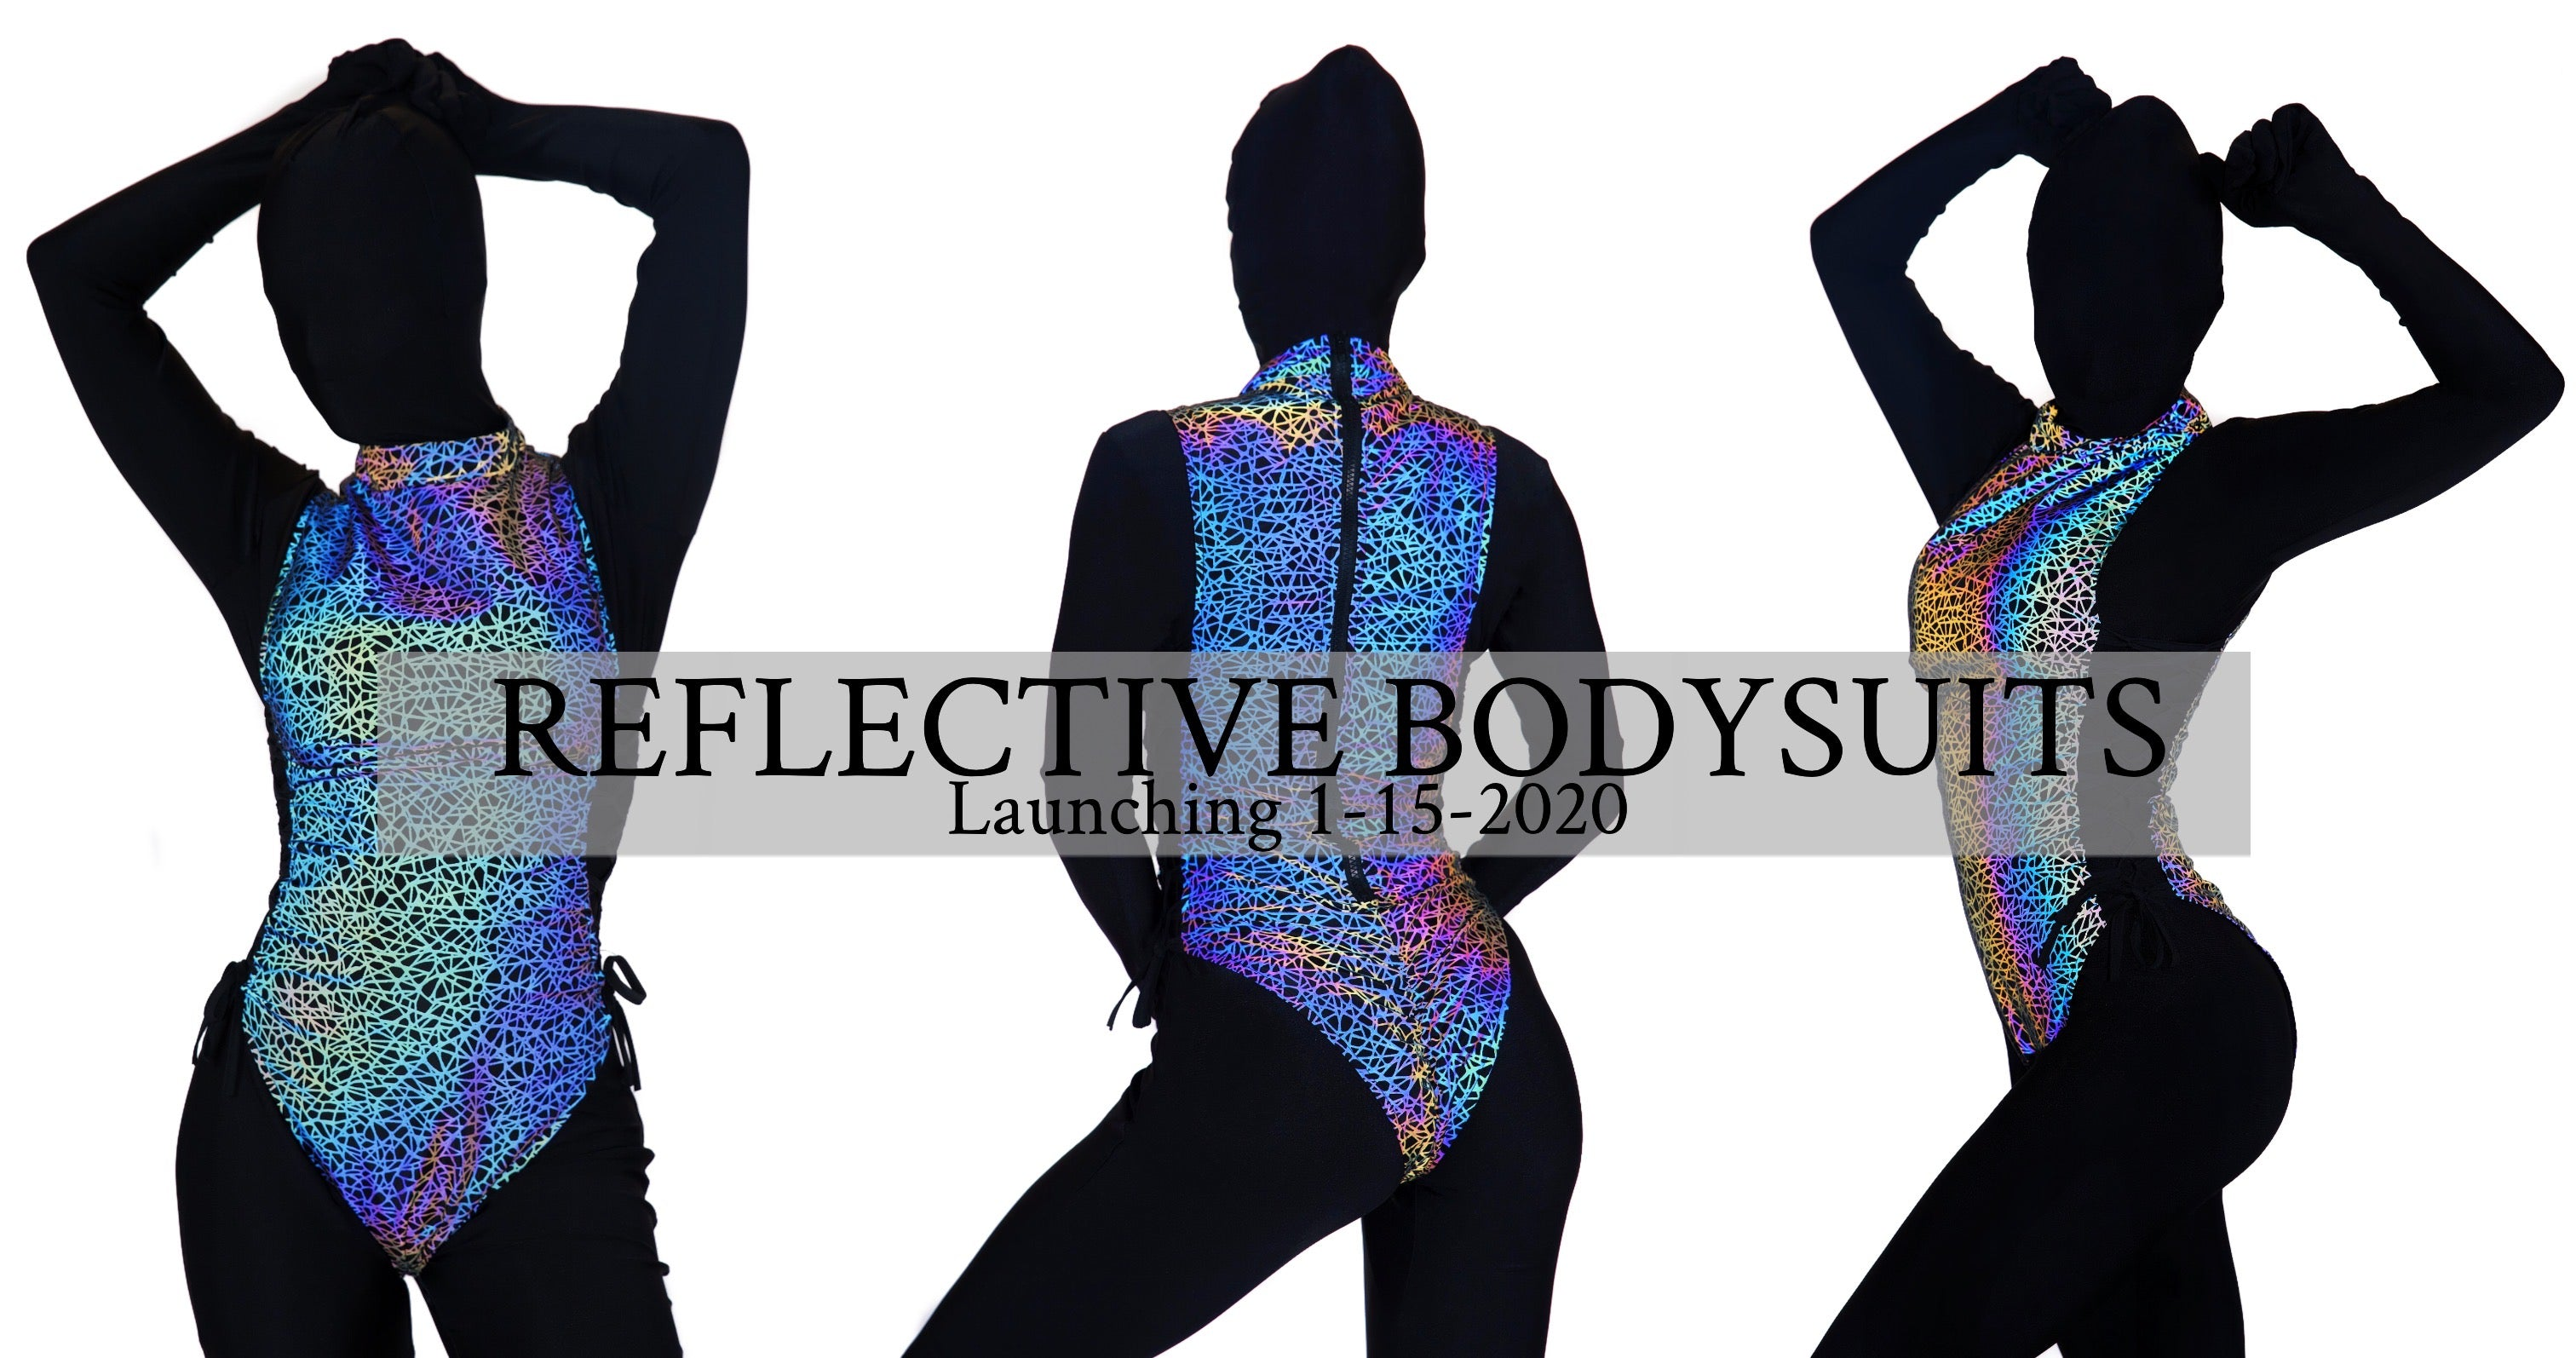 reflective-rave-clothing reflective-bodysuits reflective-rompers leotards swimsuits